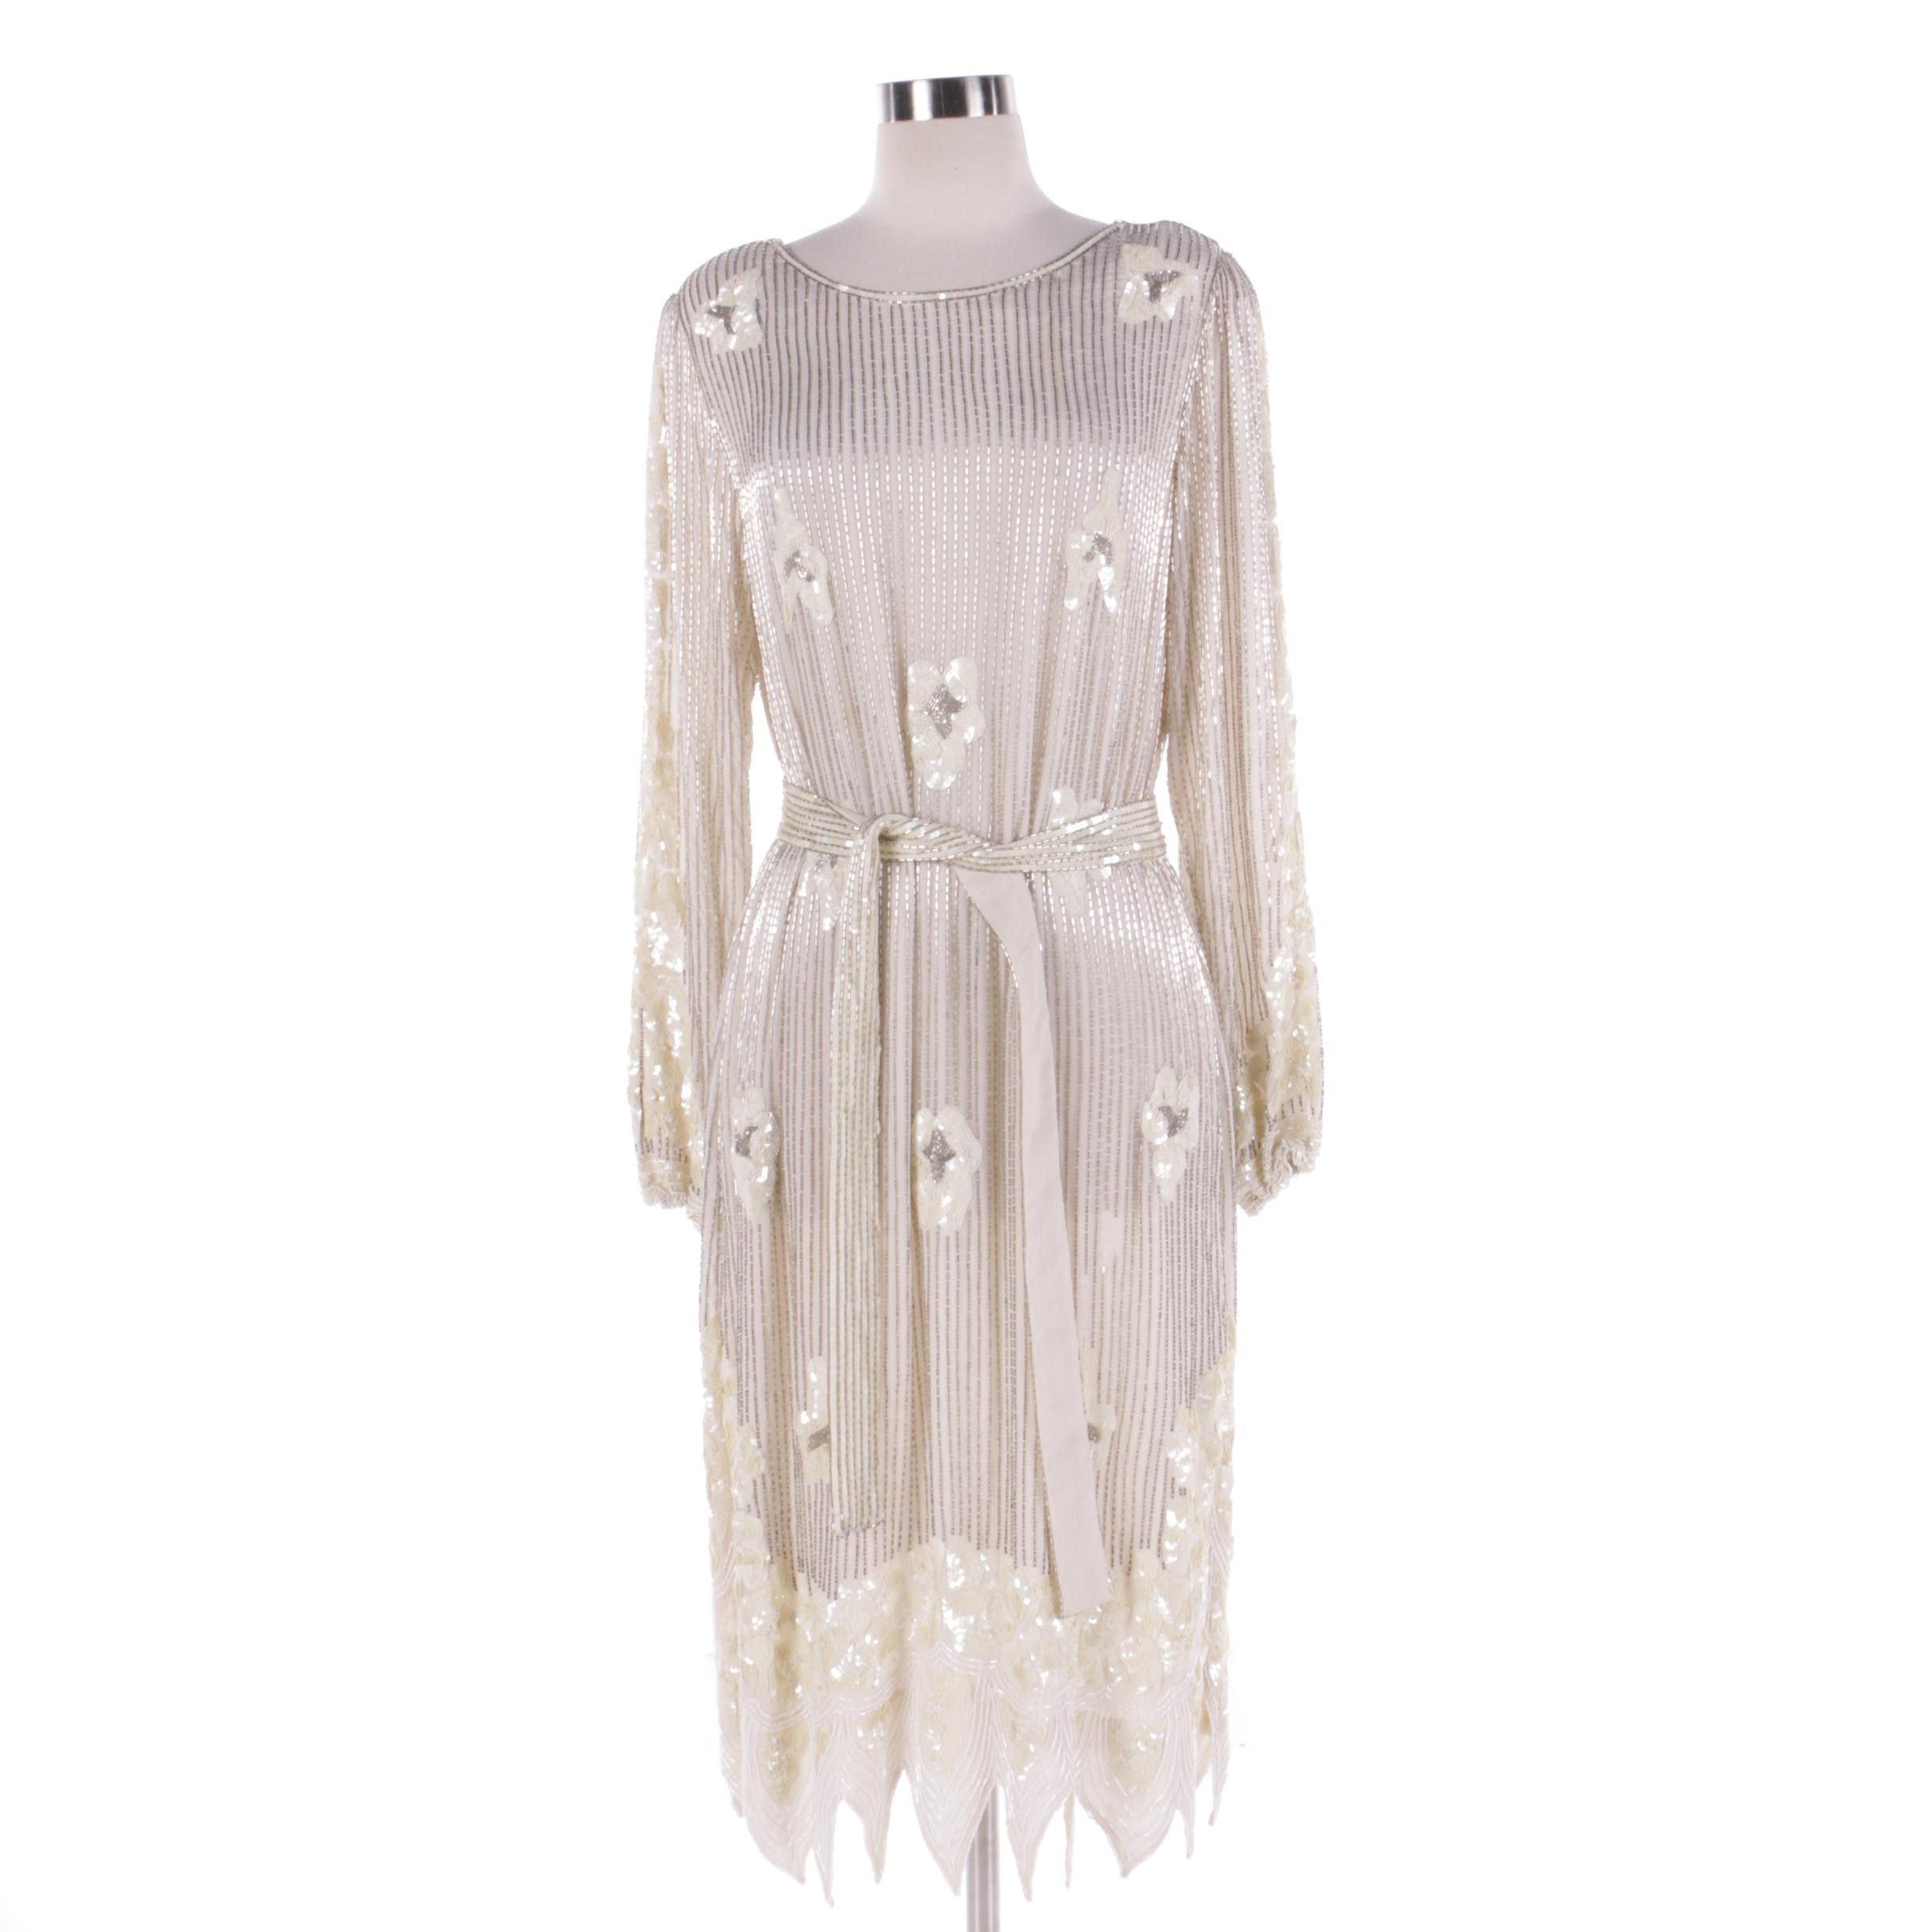 Vintage Embellished Beaded Silk Dress with Matching Sash